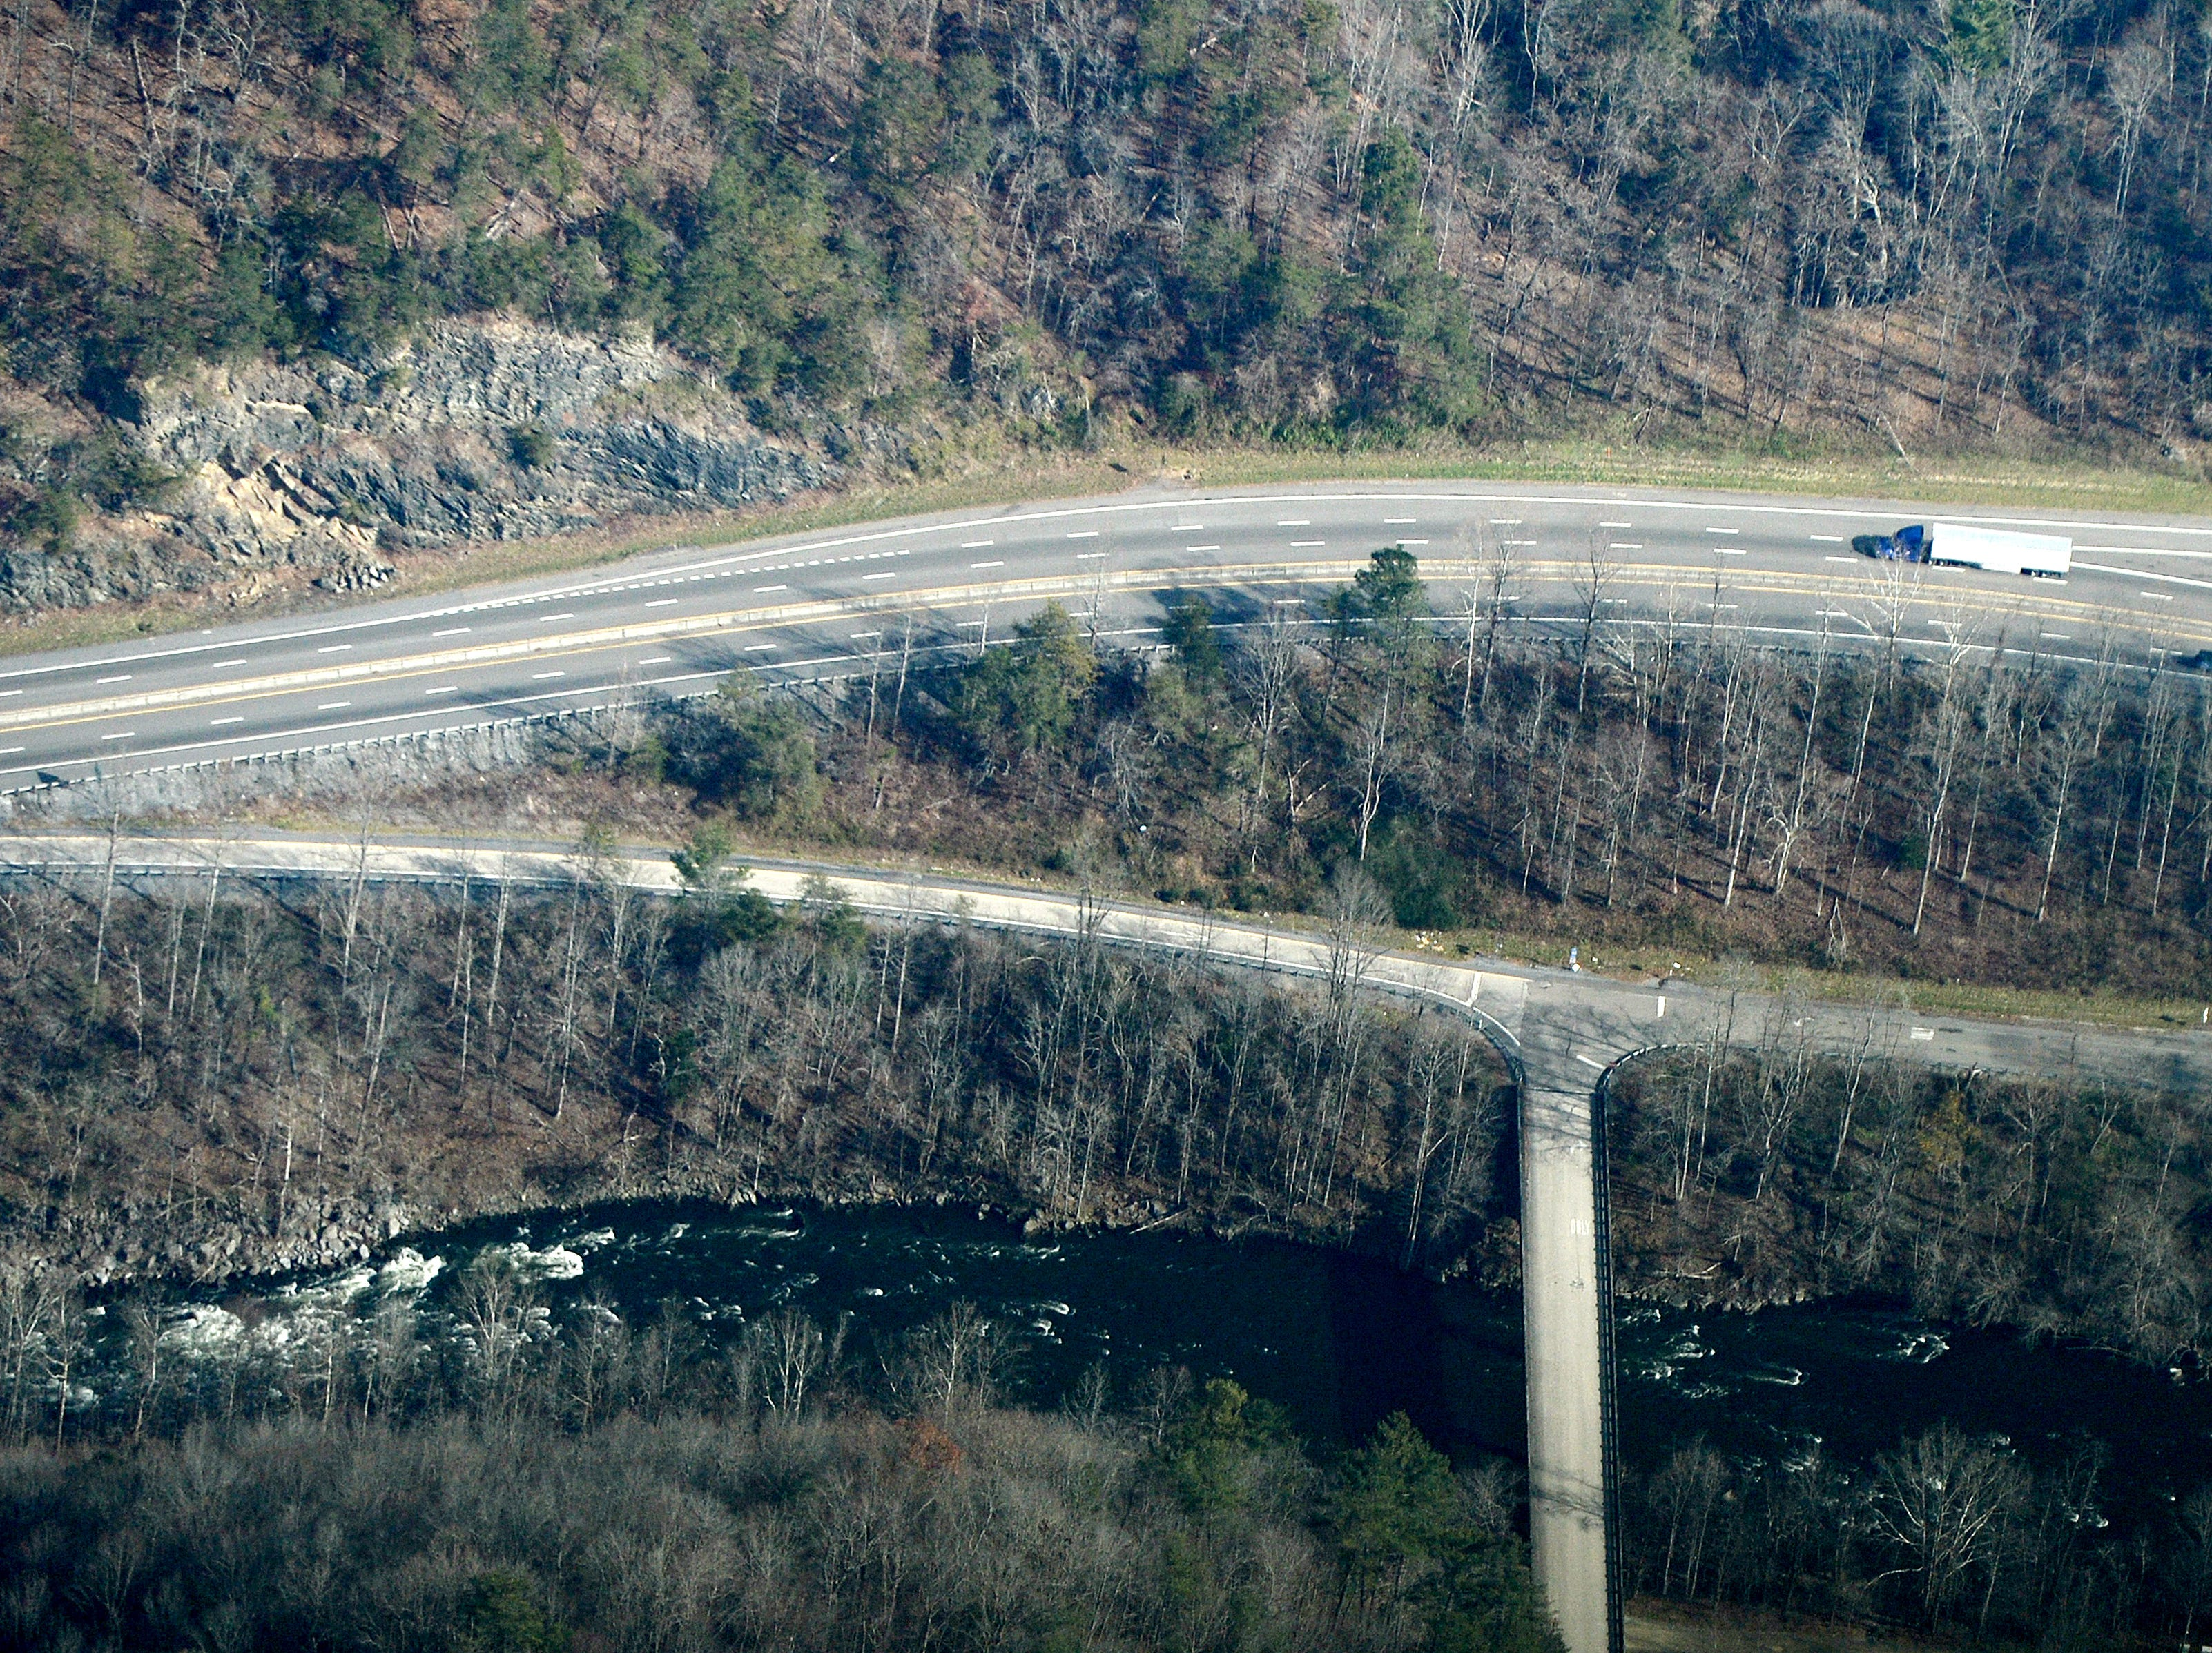 Waterville Road at I-40 exit 451 in Tennessee crossing the Pigeon River is seen from the air on Dec. 6, 2018. The Appalachian Trail crosses over the Pigeon River at this location. Photo made possible by SouthWings.